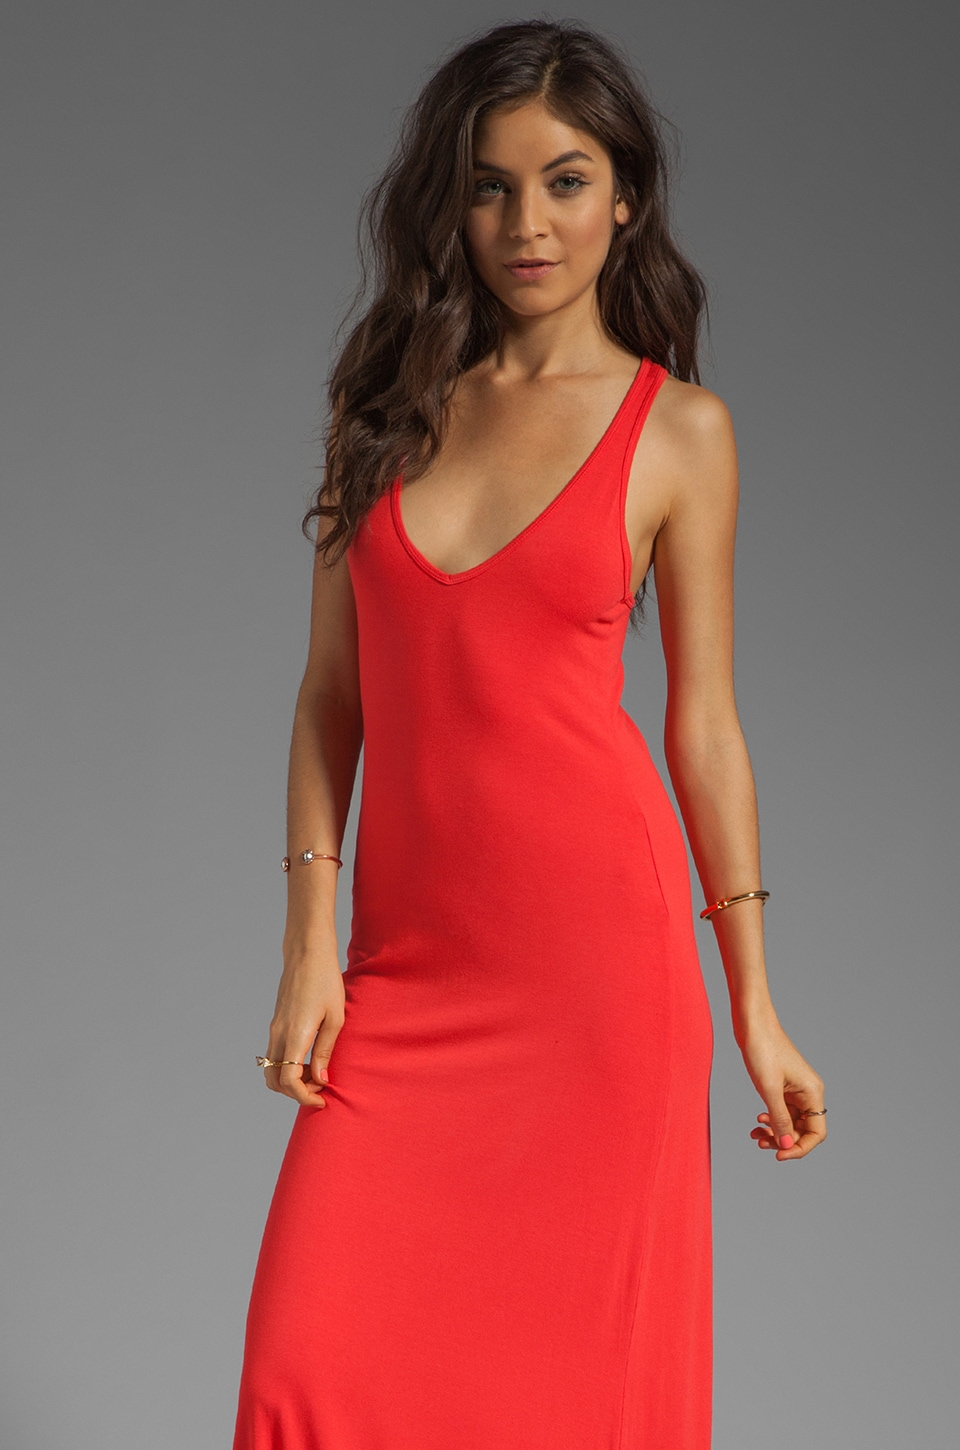 Feel the Piece V Neck Maxi Dress in Dacquri